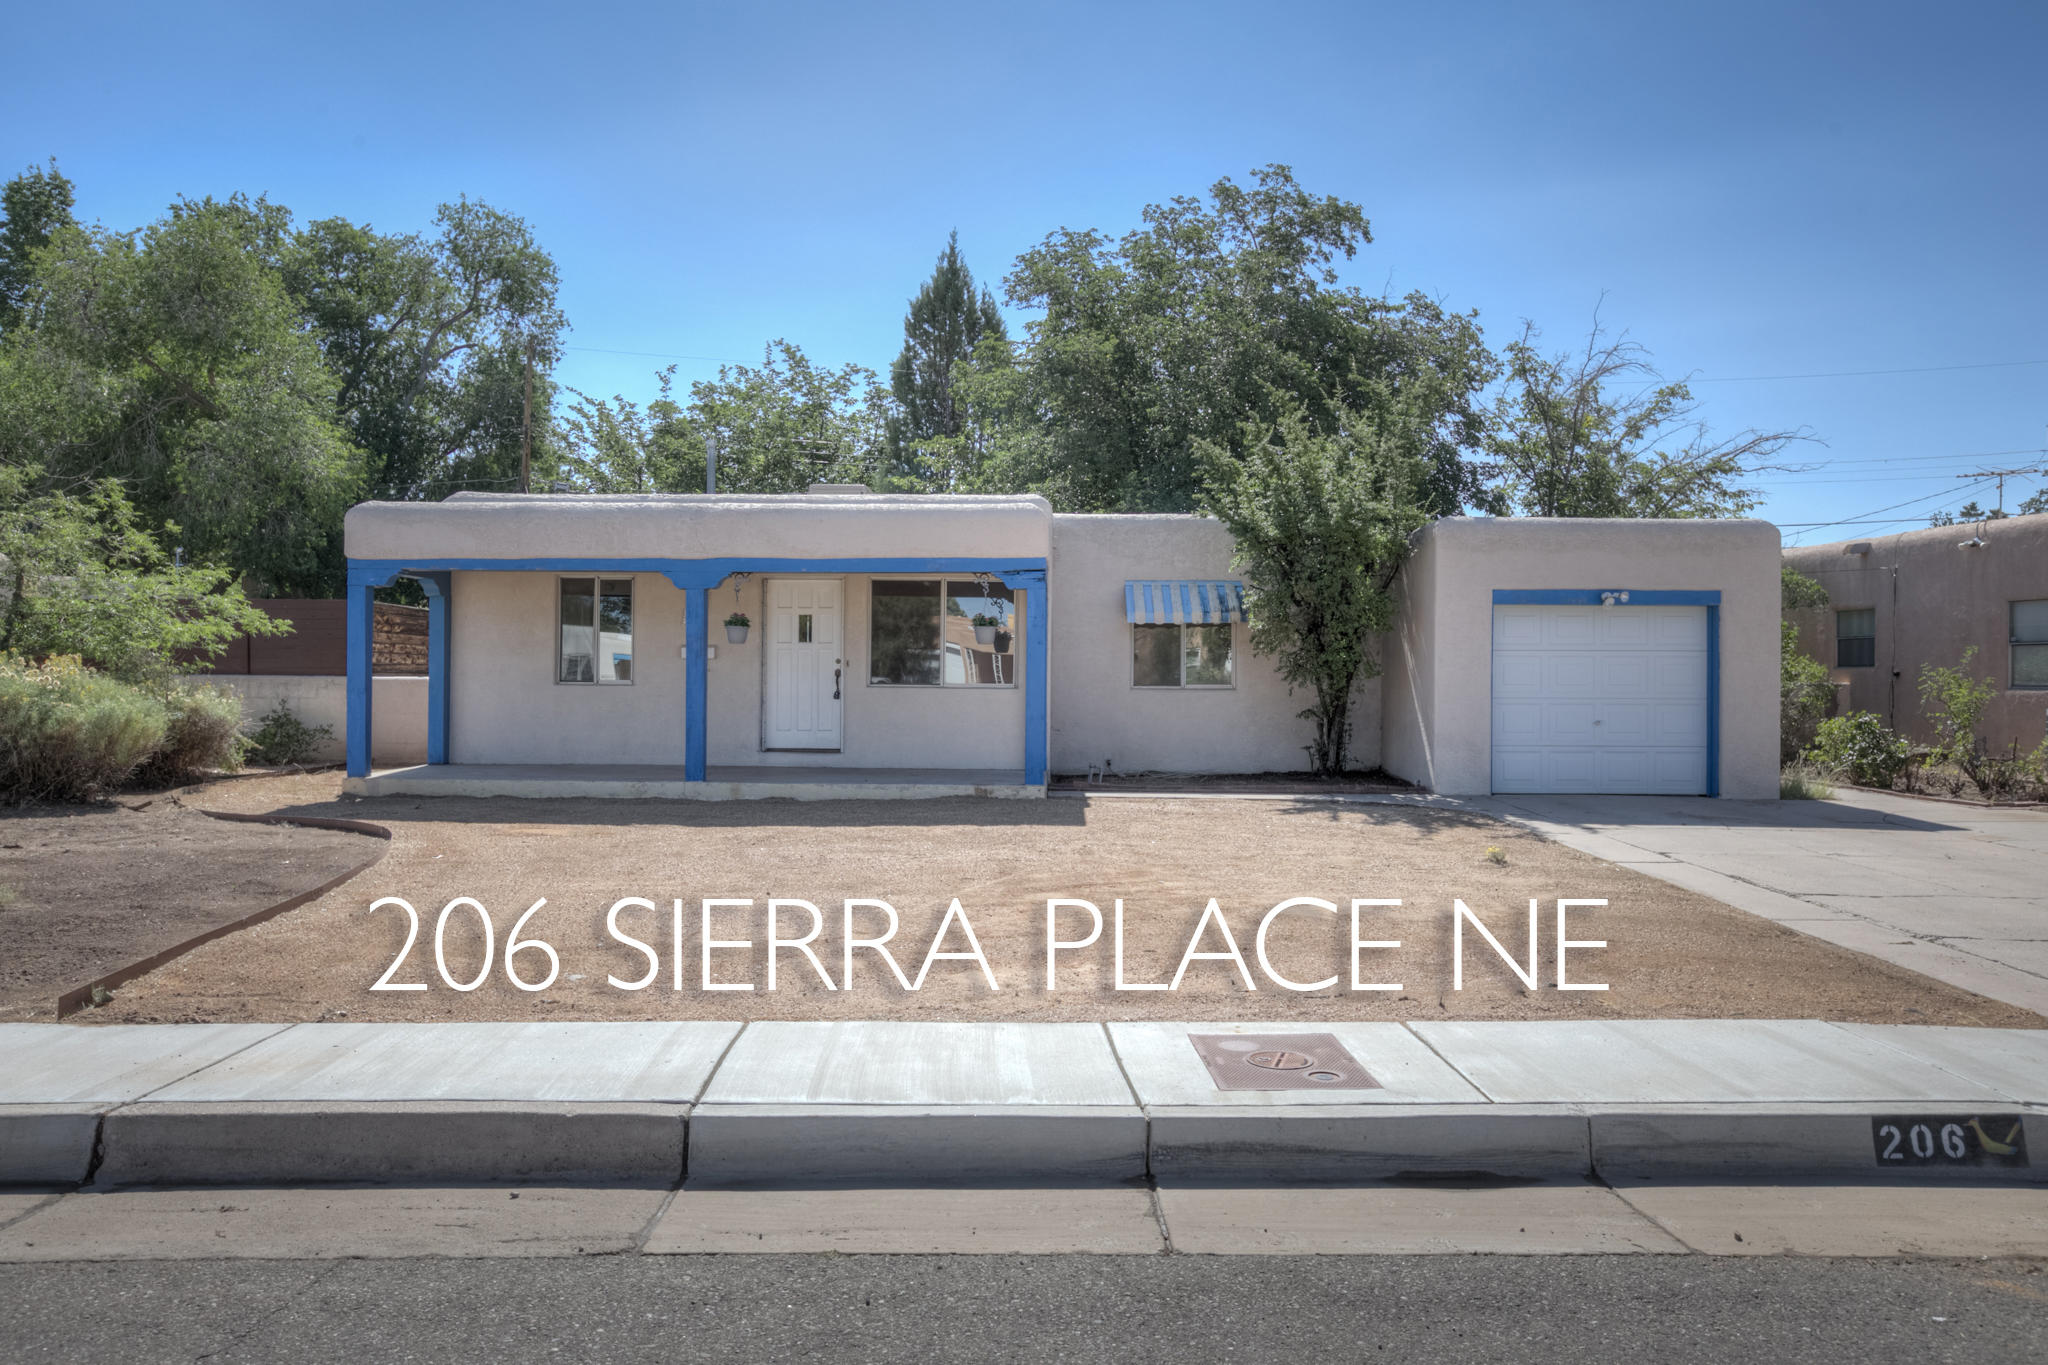 Location, location, location! Near Nob Hill, sweet coved ceilings, hardwood floors, and all the charm of the Pueblo Alto area! Make this classic home yours! 3BR/1 Full Bath, 1 3/4 bath, 1 car garage. Incredible potential.